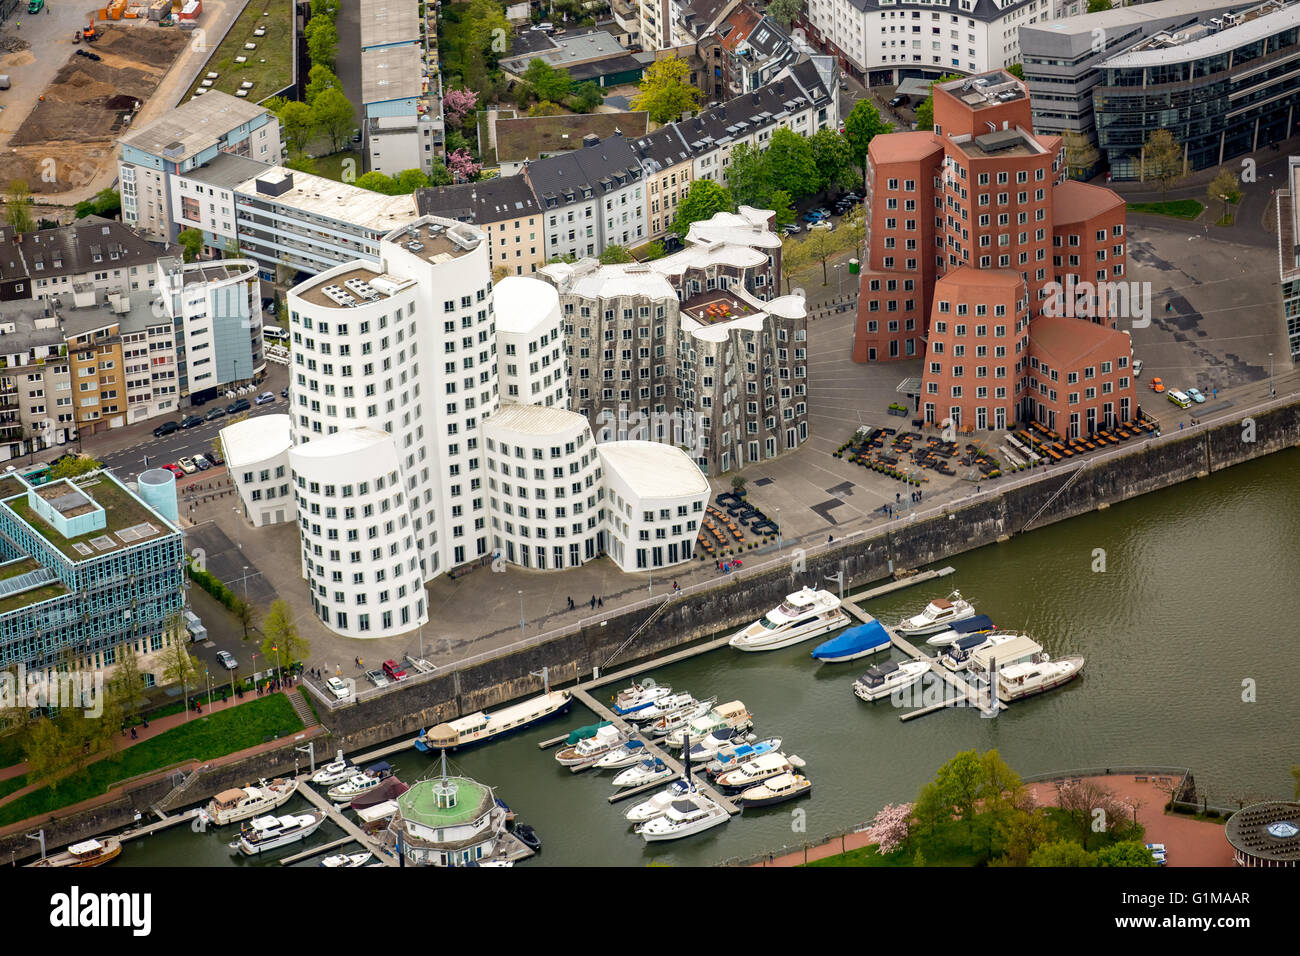 Aerial view, editorial use only, Gehry buildings in the Media Harbour Dusseldorf, modern architecture, Dusseldorf, - Stock Image